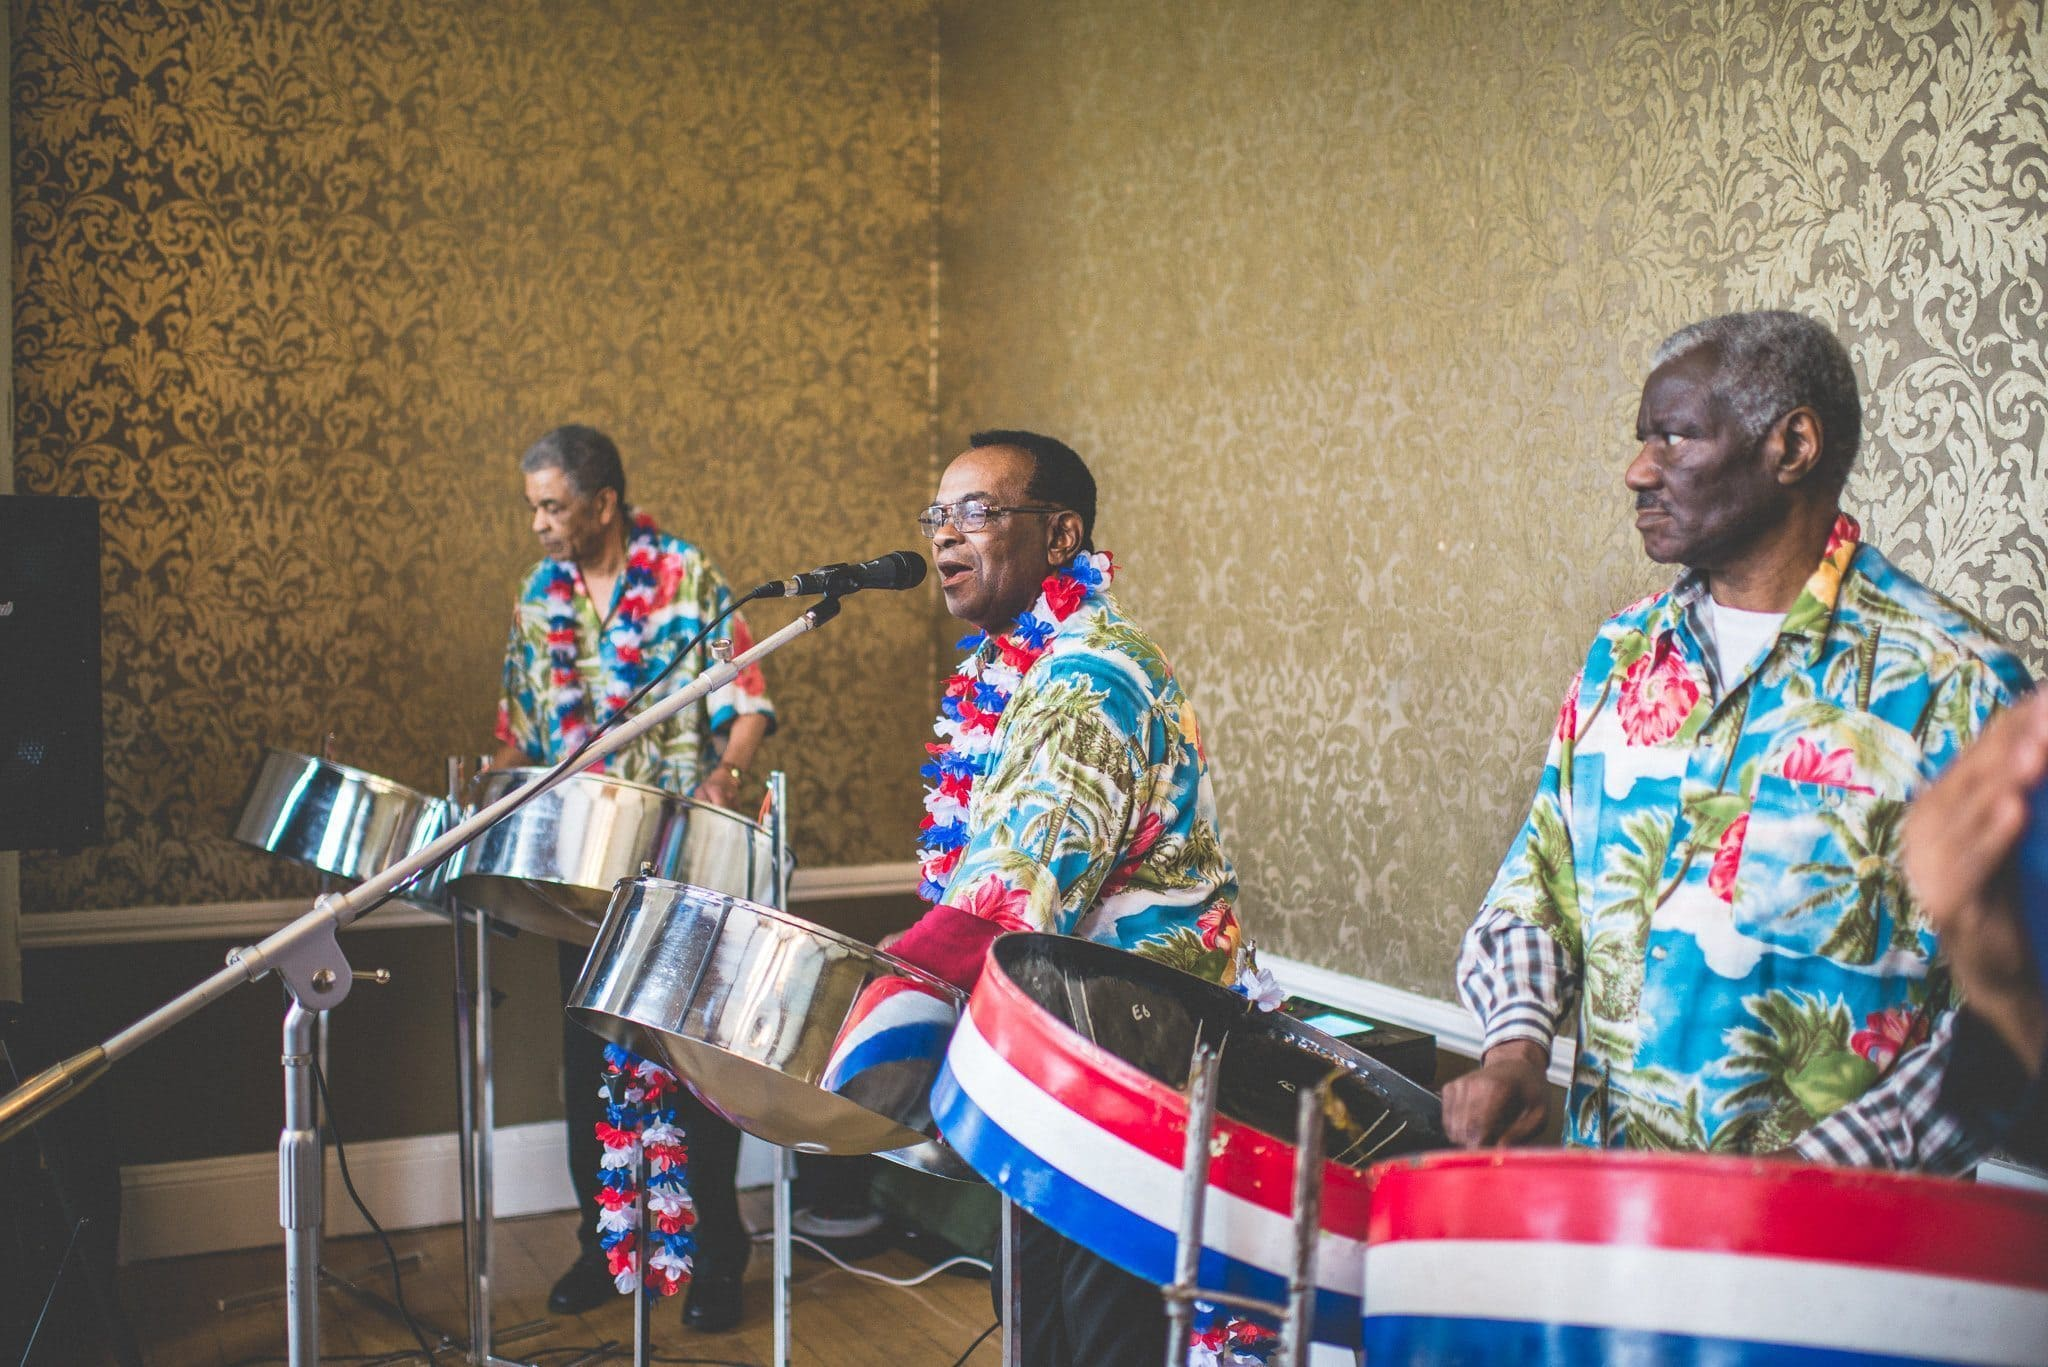 A steel band plays, wearing Hawaiian shirts and red, white and blue flower garlands